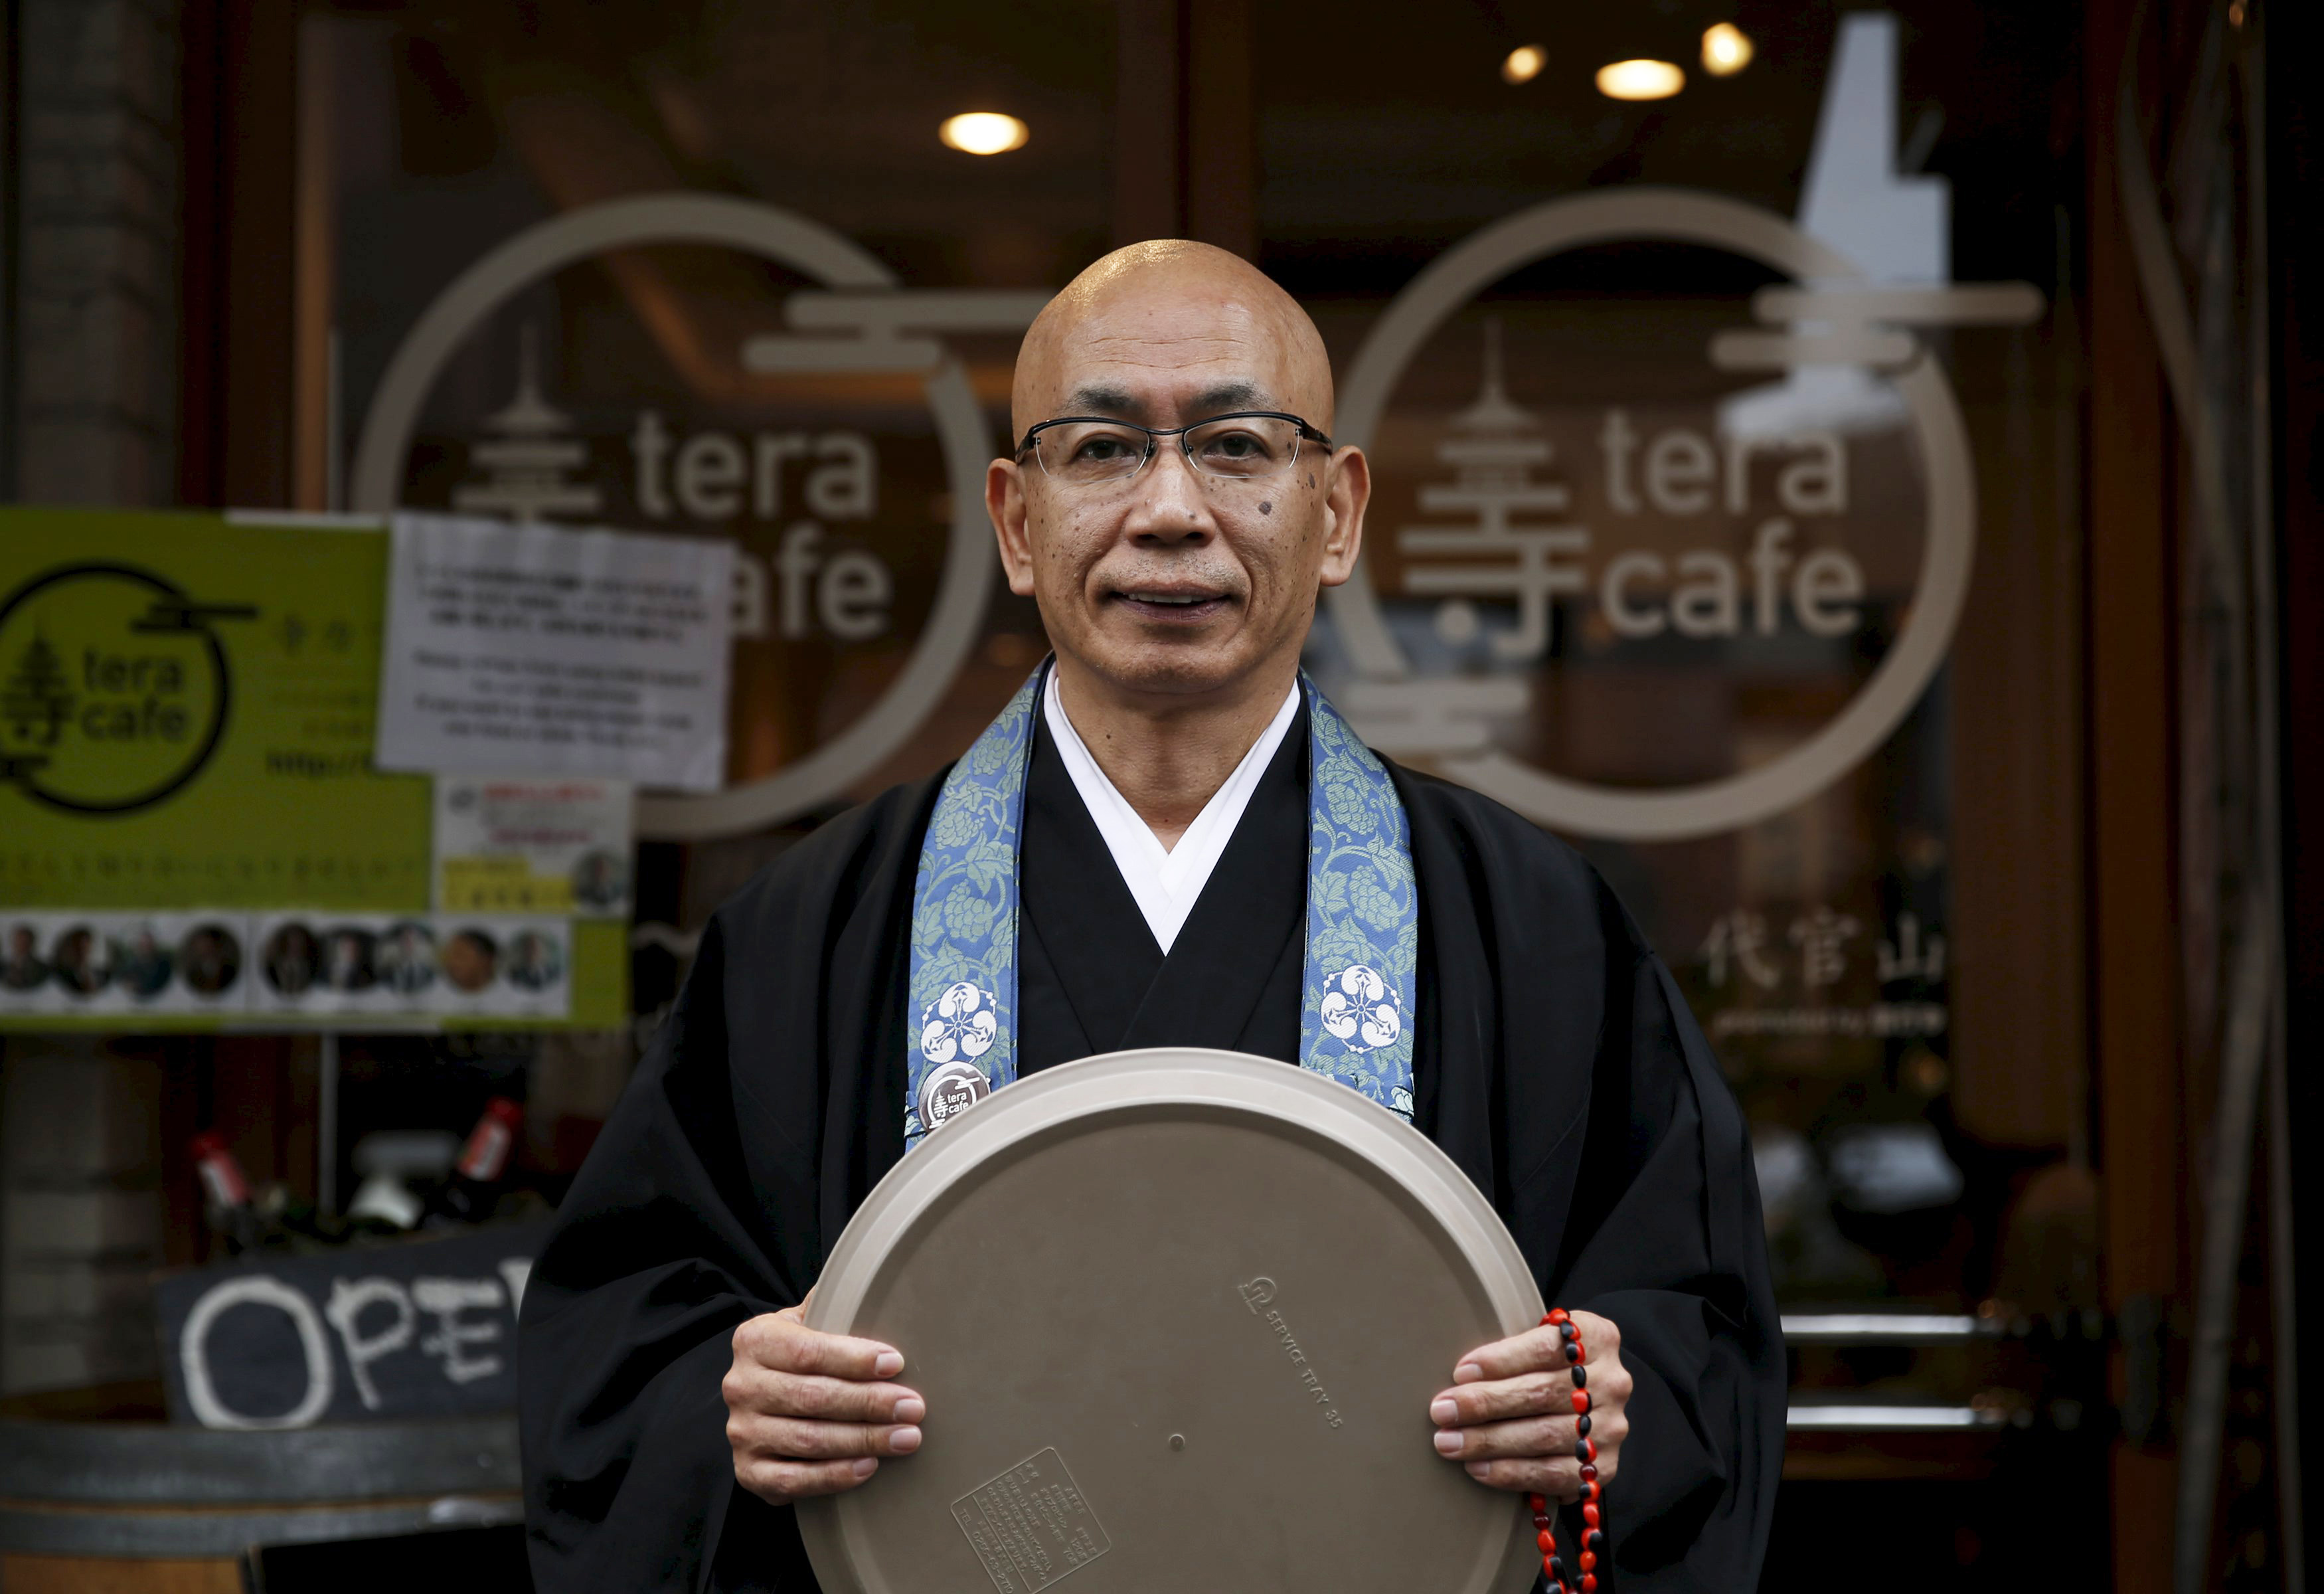 Belief and beer: Buddhist monk Shokyo Miura is an on-site priest at Tokyo's Tera Cafe, which serves coffee and alcoholic beverages. | REUTERS